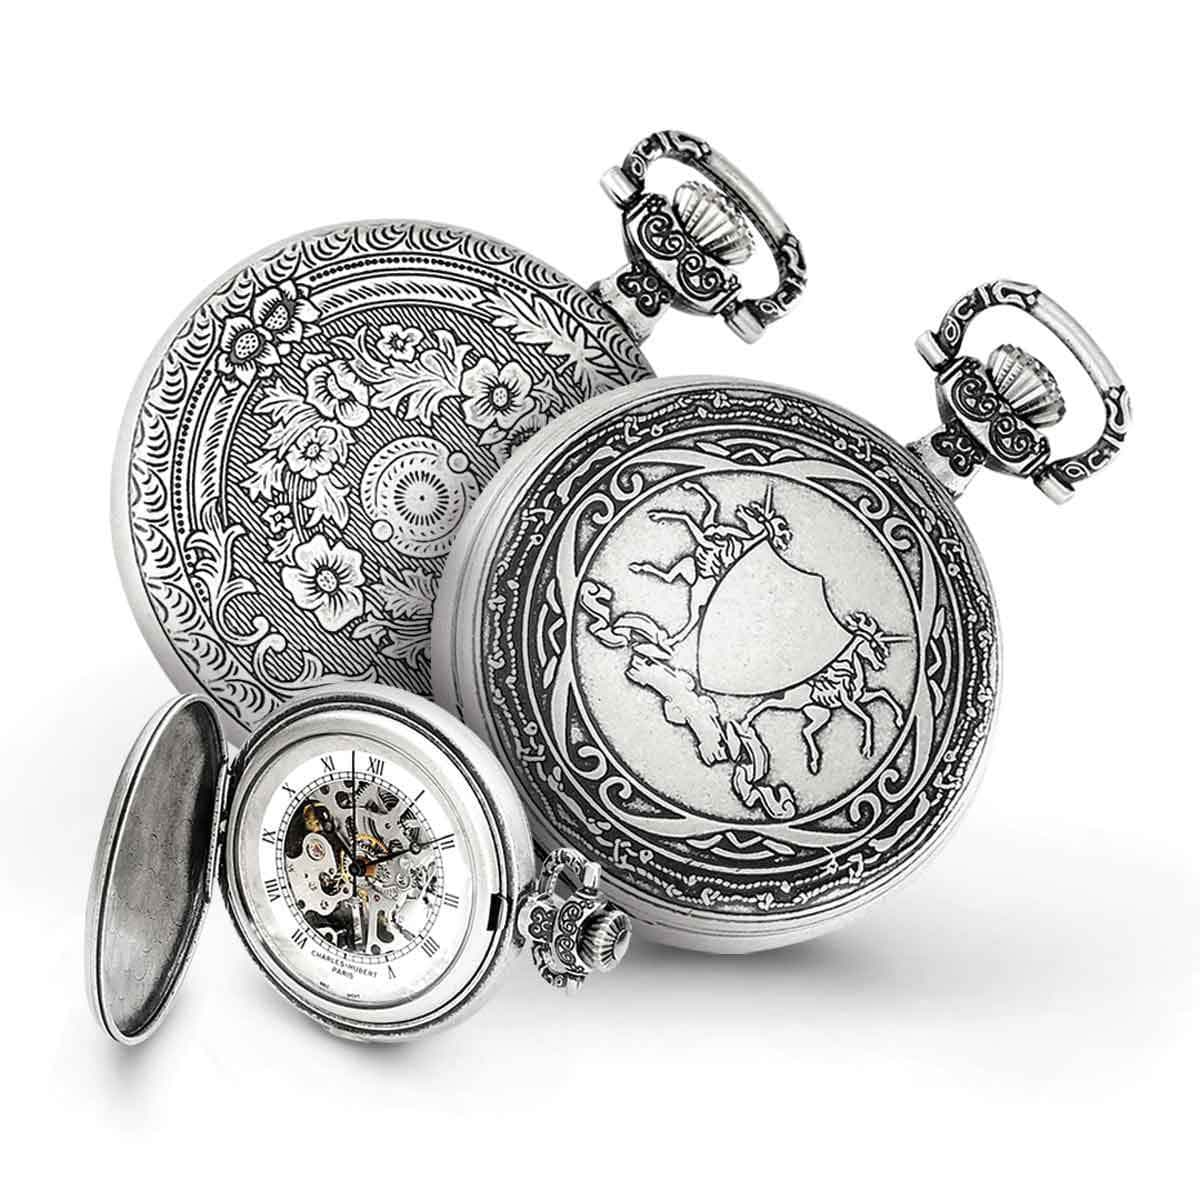 Charles Hubert Antiqued Men's Unicorn Shield Pocket Watch...